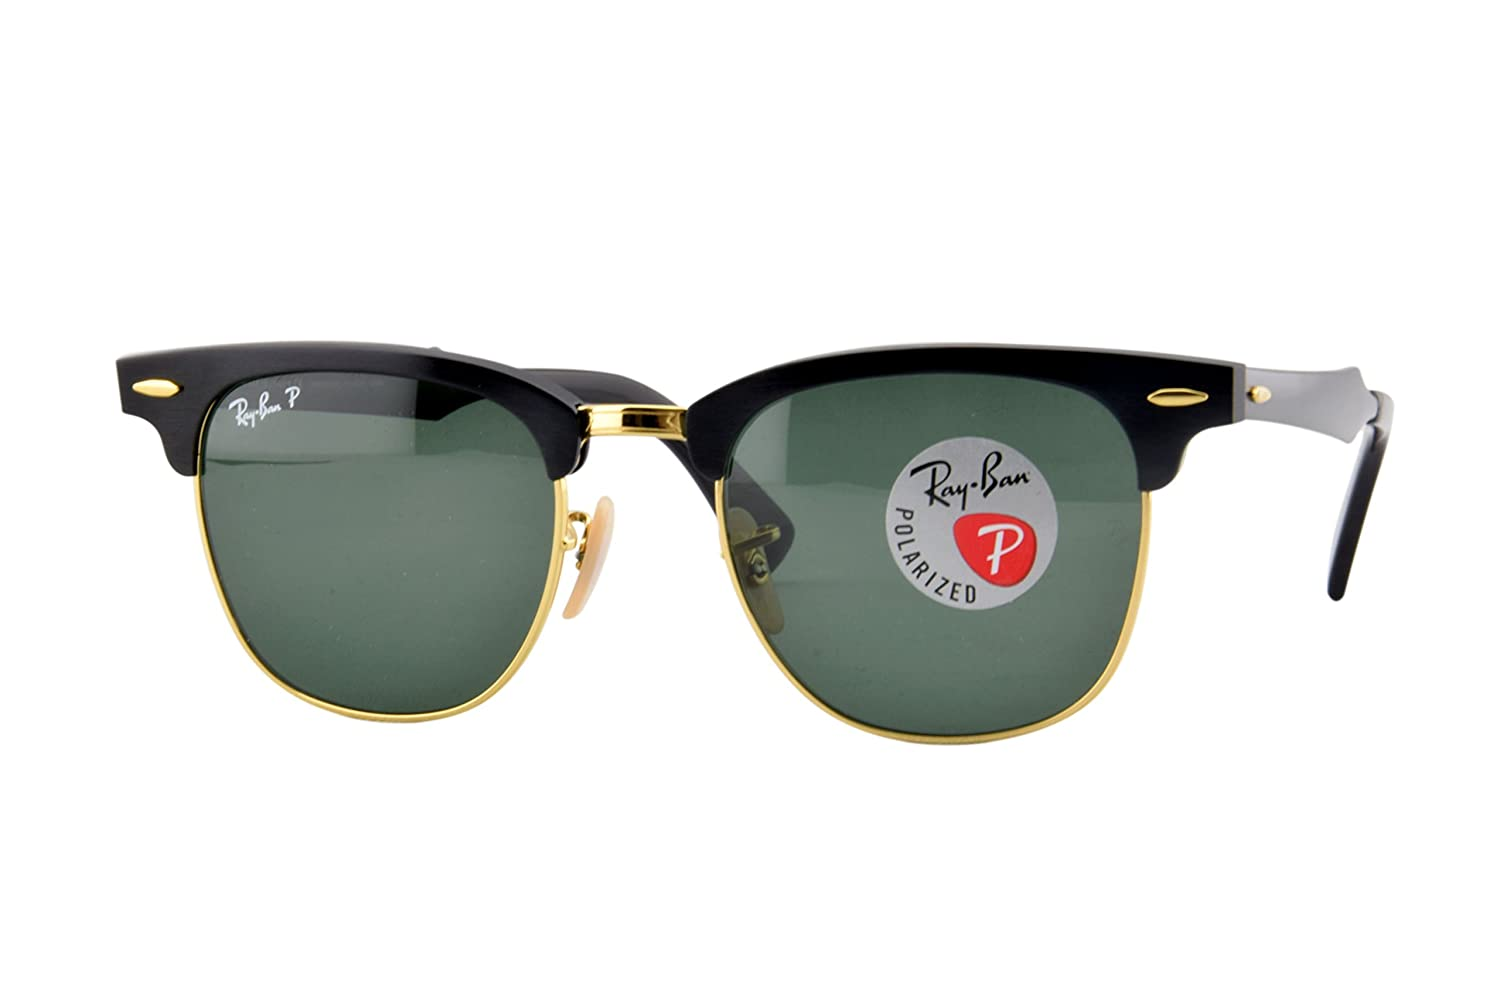 Ray Ban Clubmaster Amazon Us